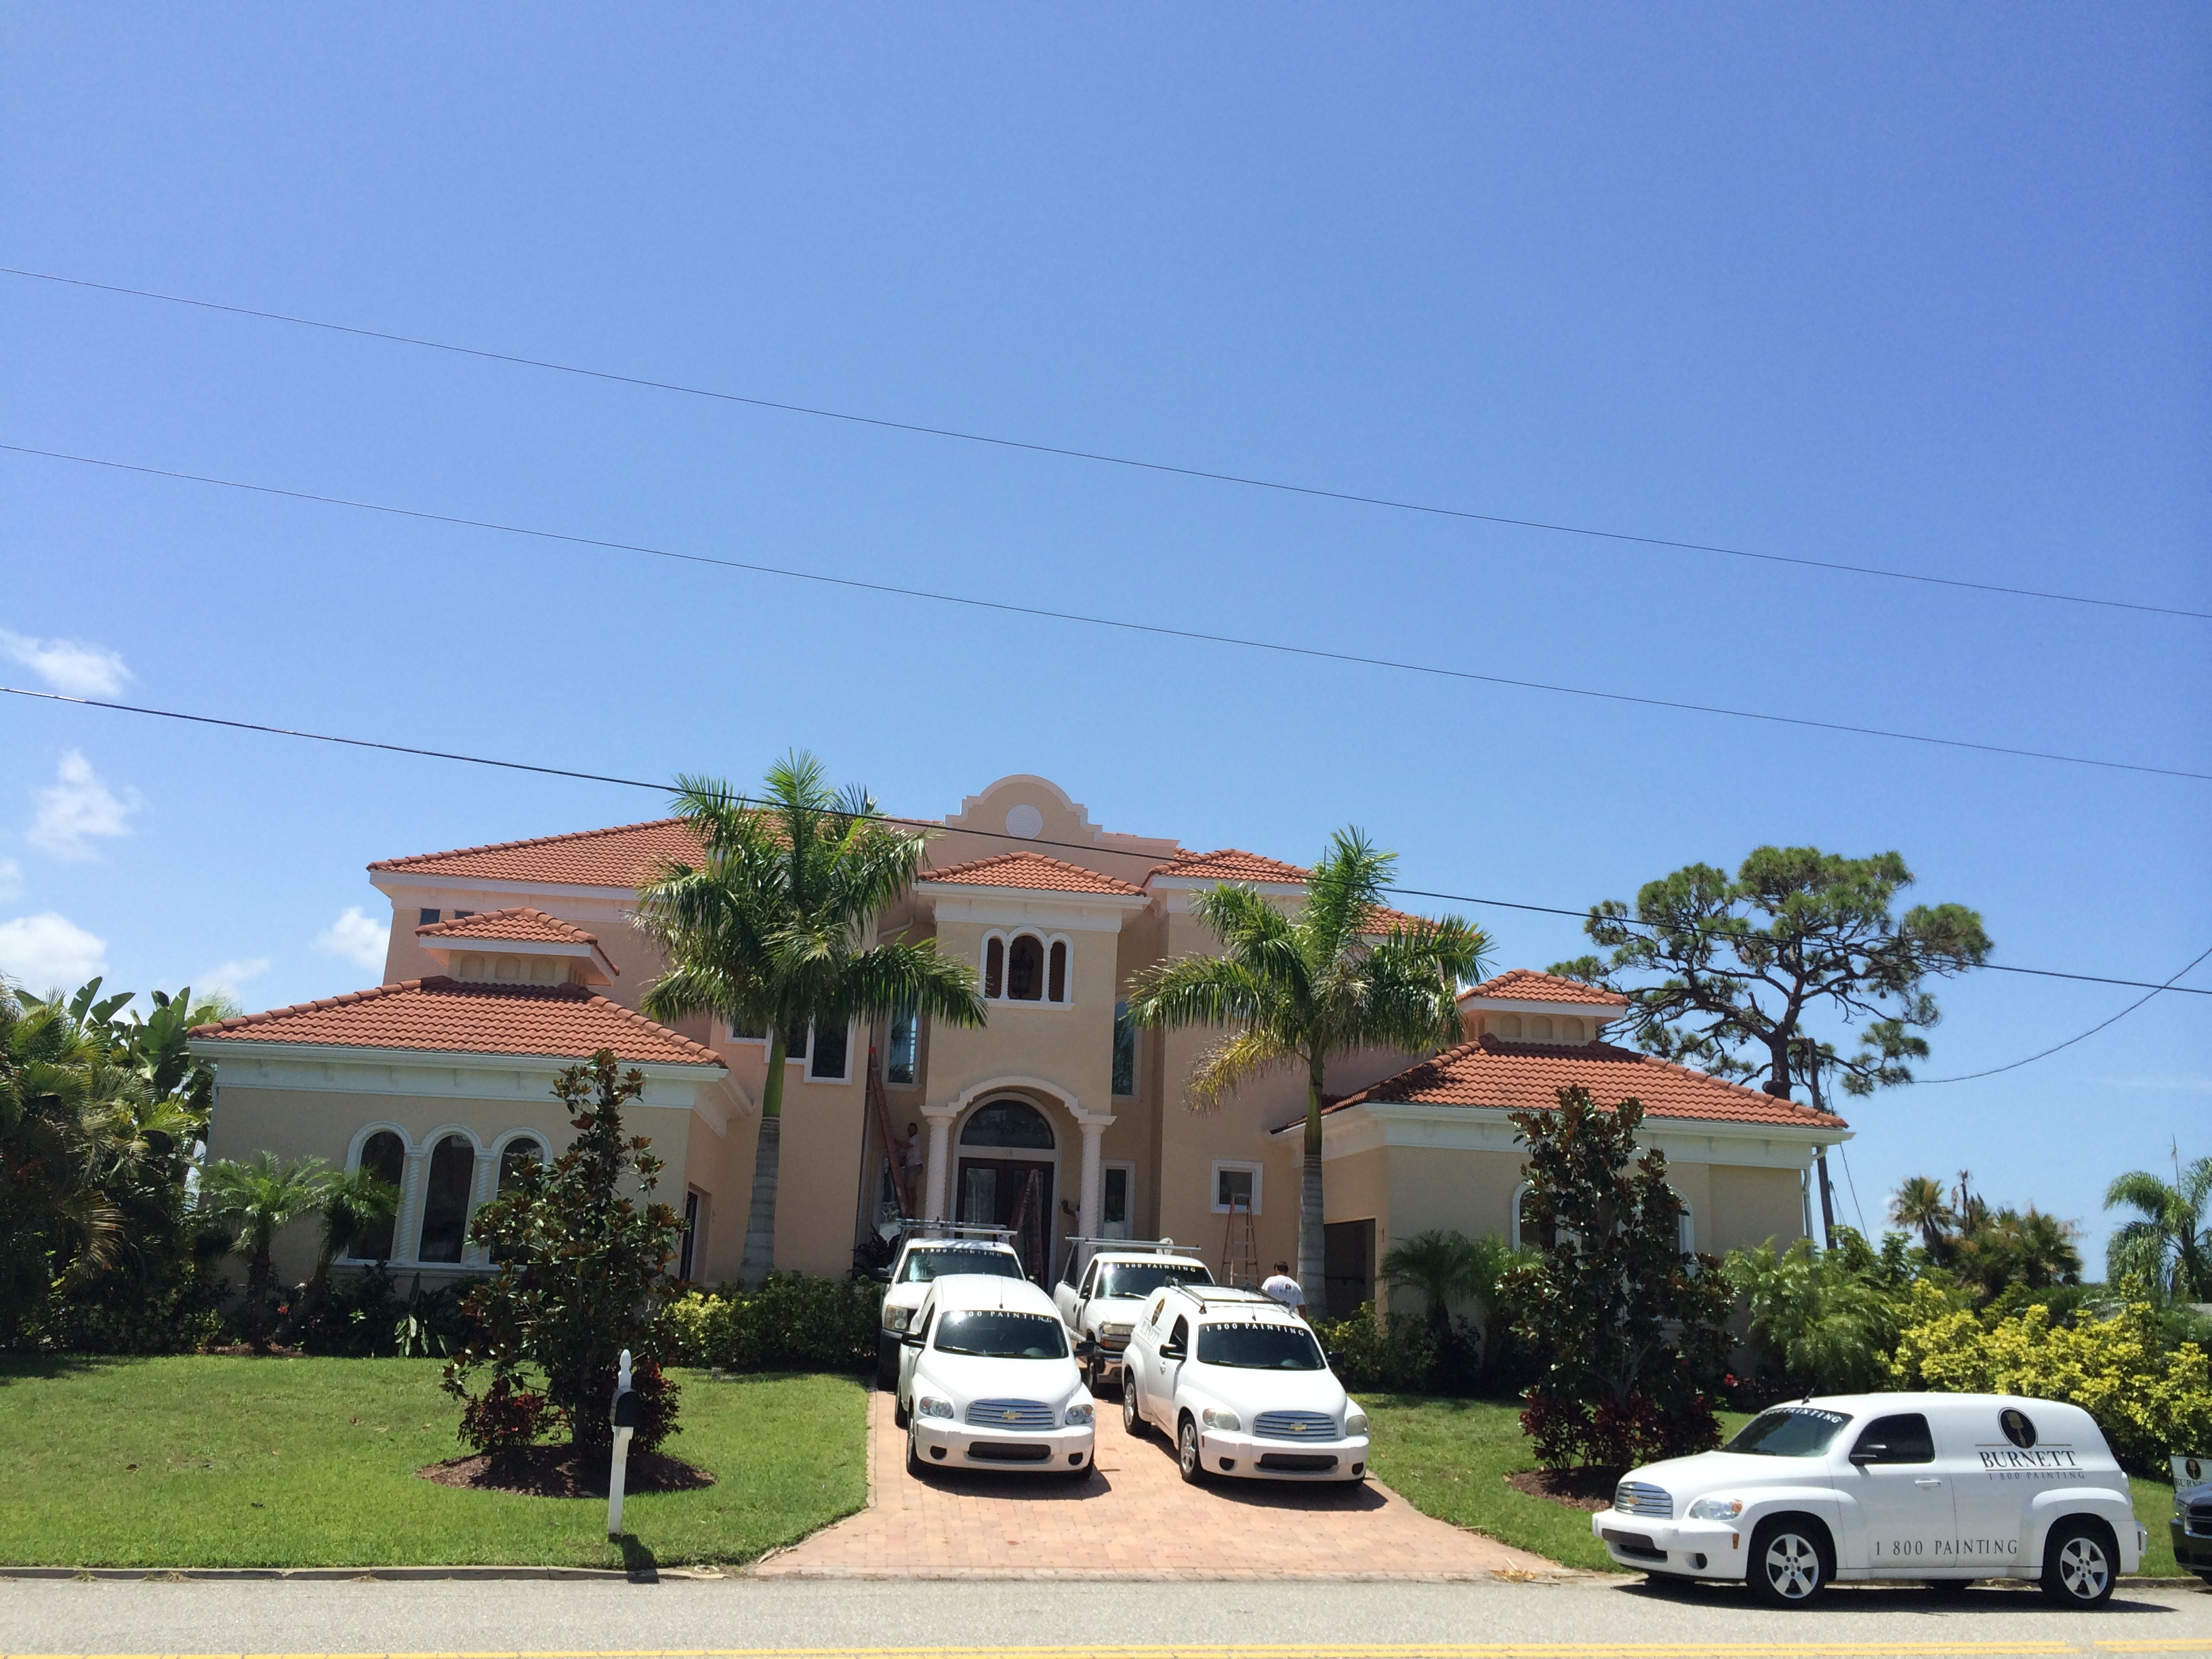 3 000 To 5 Square Foot Homes Like This One Near Venice Island Range From 6 And Up